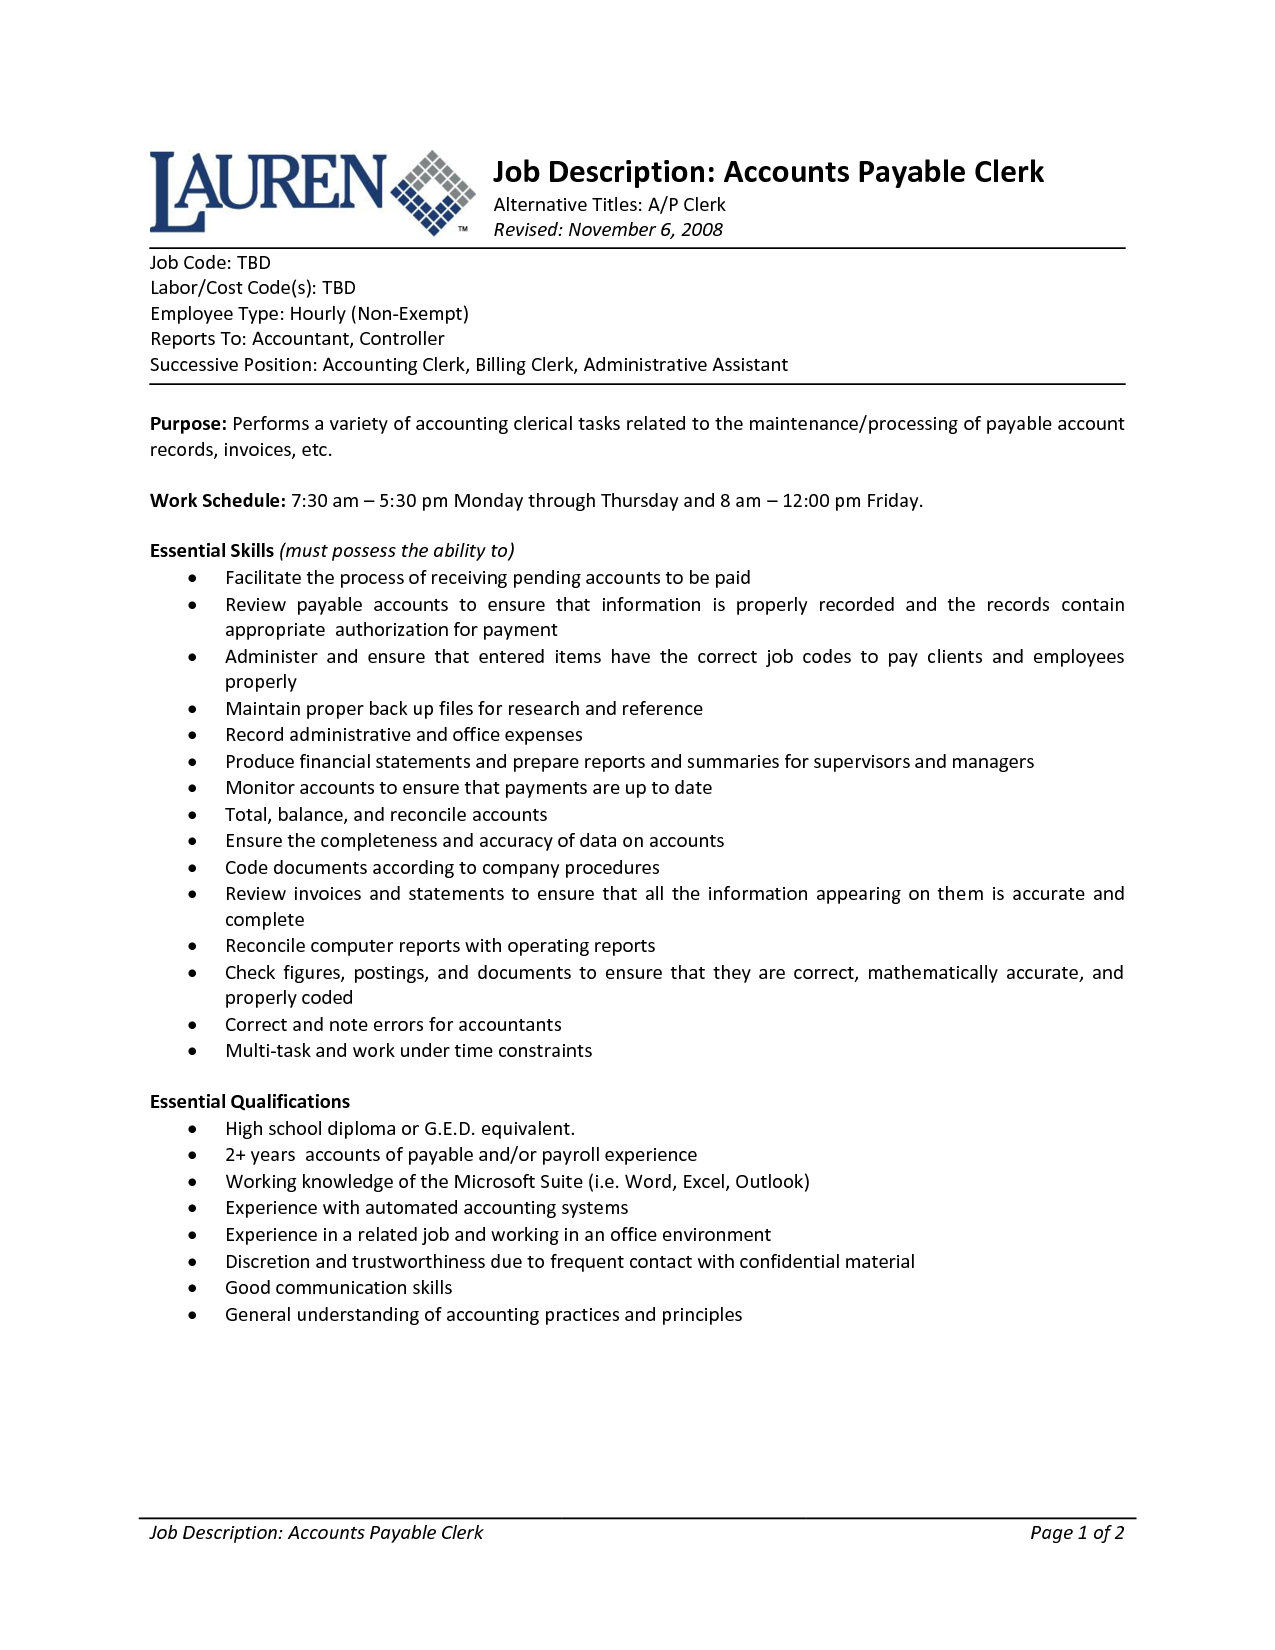 accounting specialist job description